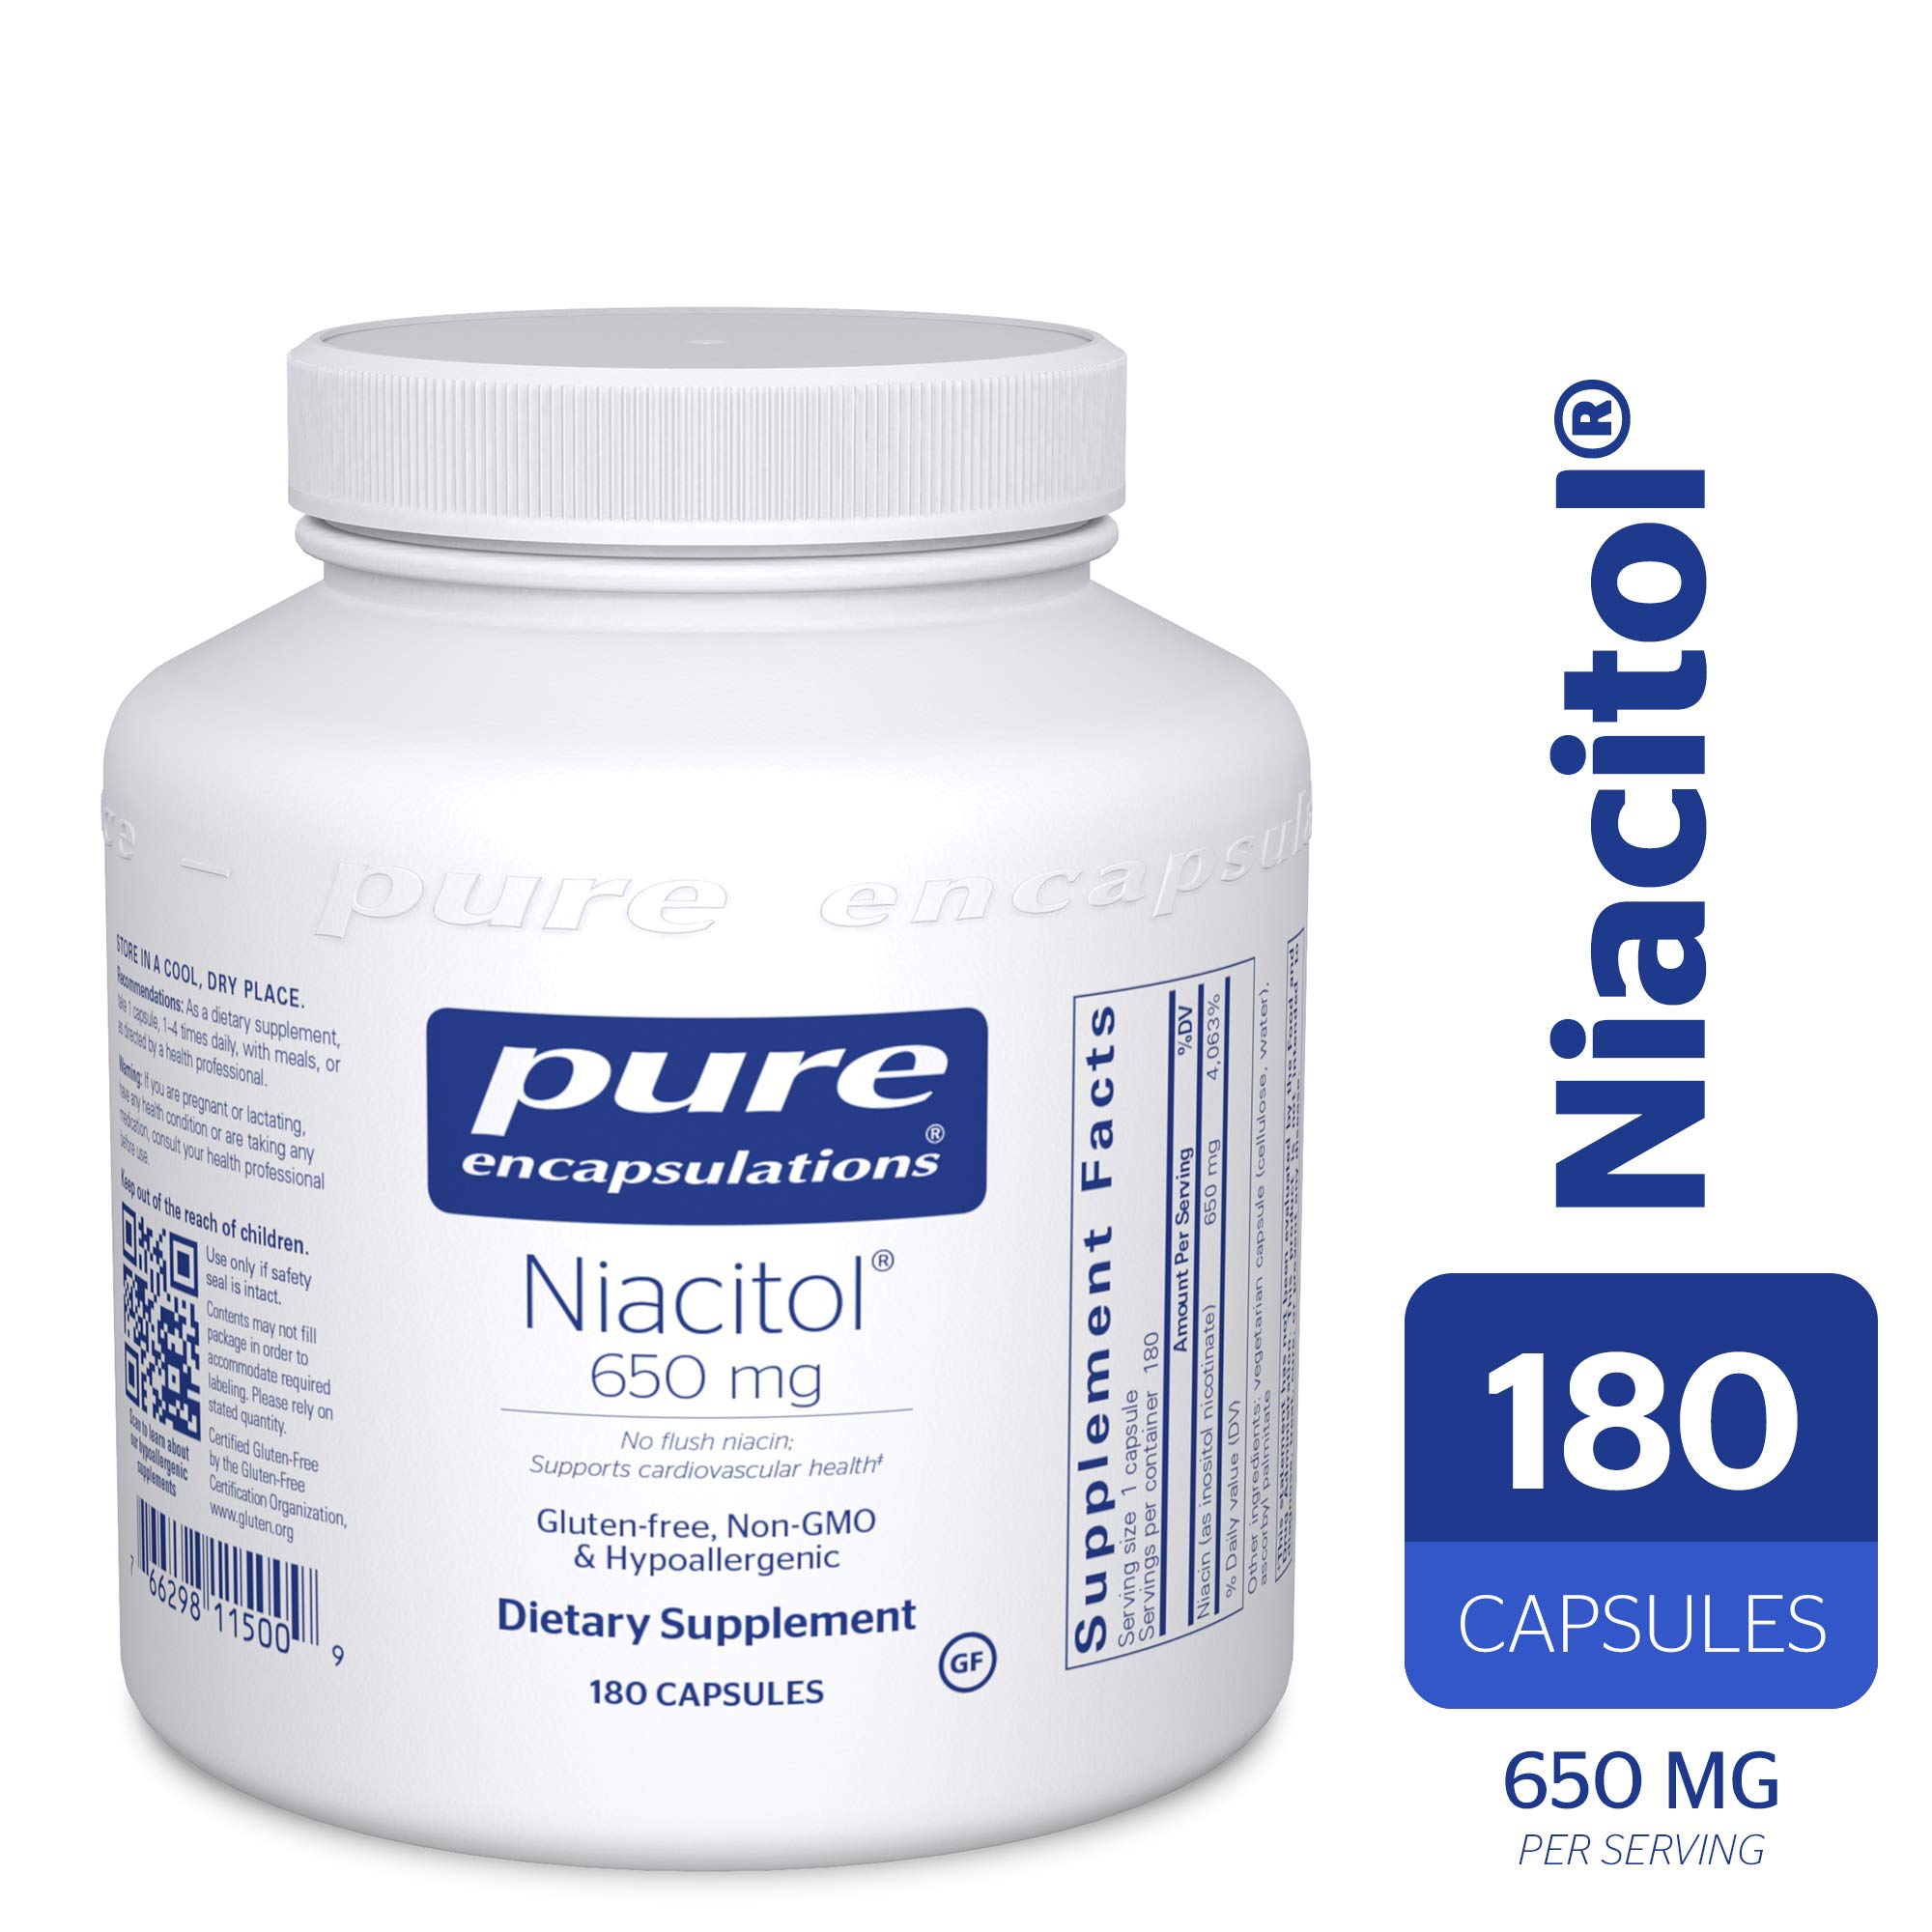 Pure Encapsulations - Niacitol 650 mg - Hypoallergenic No-Flush Niacin to Support Digestion, Hormone Synthesis, and Tissue Formation* - 180 Capsules by Pure Encapsulations